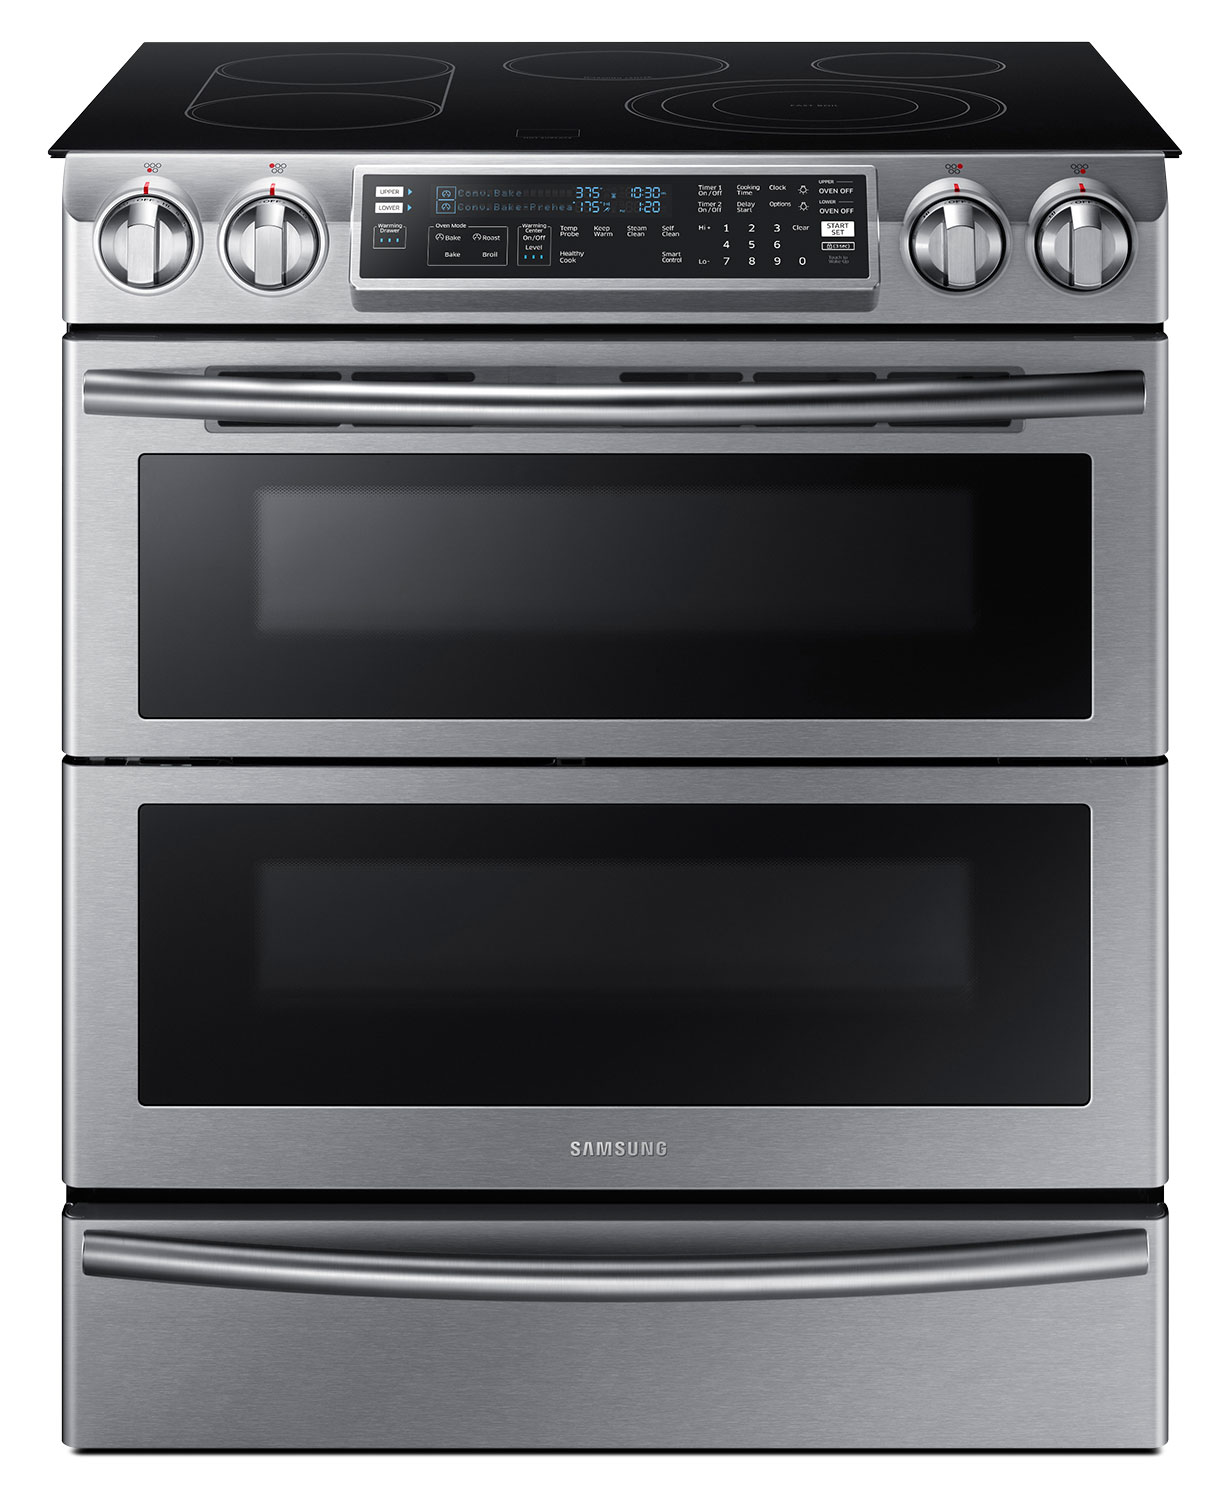 Cooking Products - Samsung 5.8 Cu. Ft. Slide-In Electric Flex Duo™ Range – NE58K9850WS